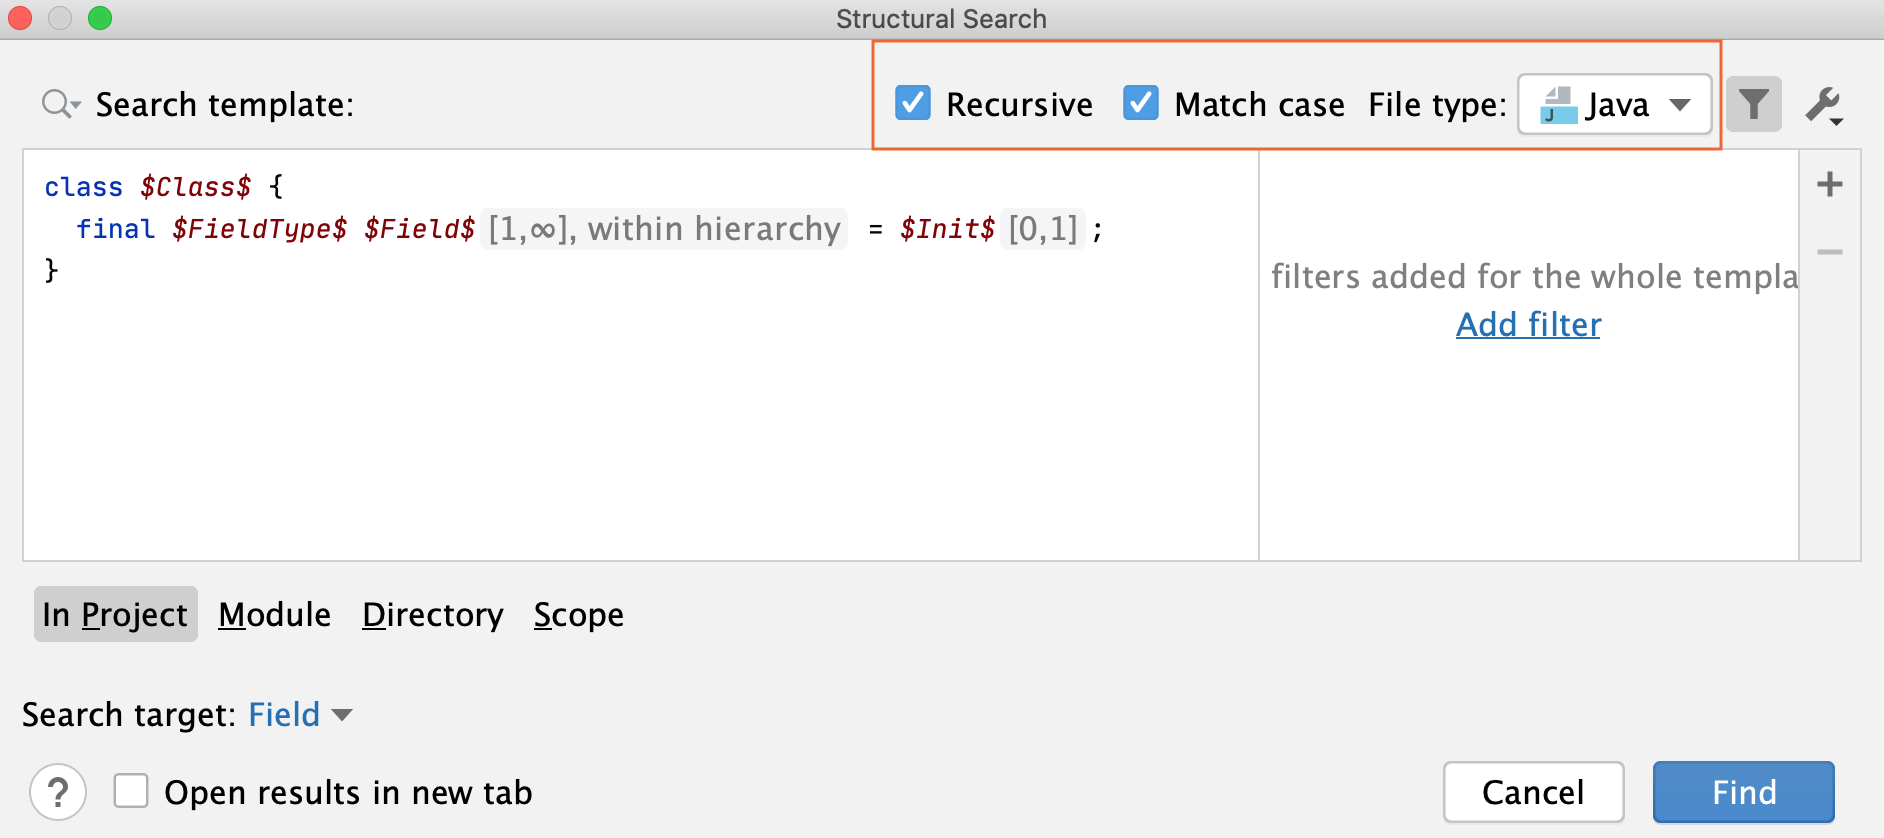 Structural Search dialog: narrow search